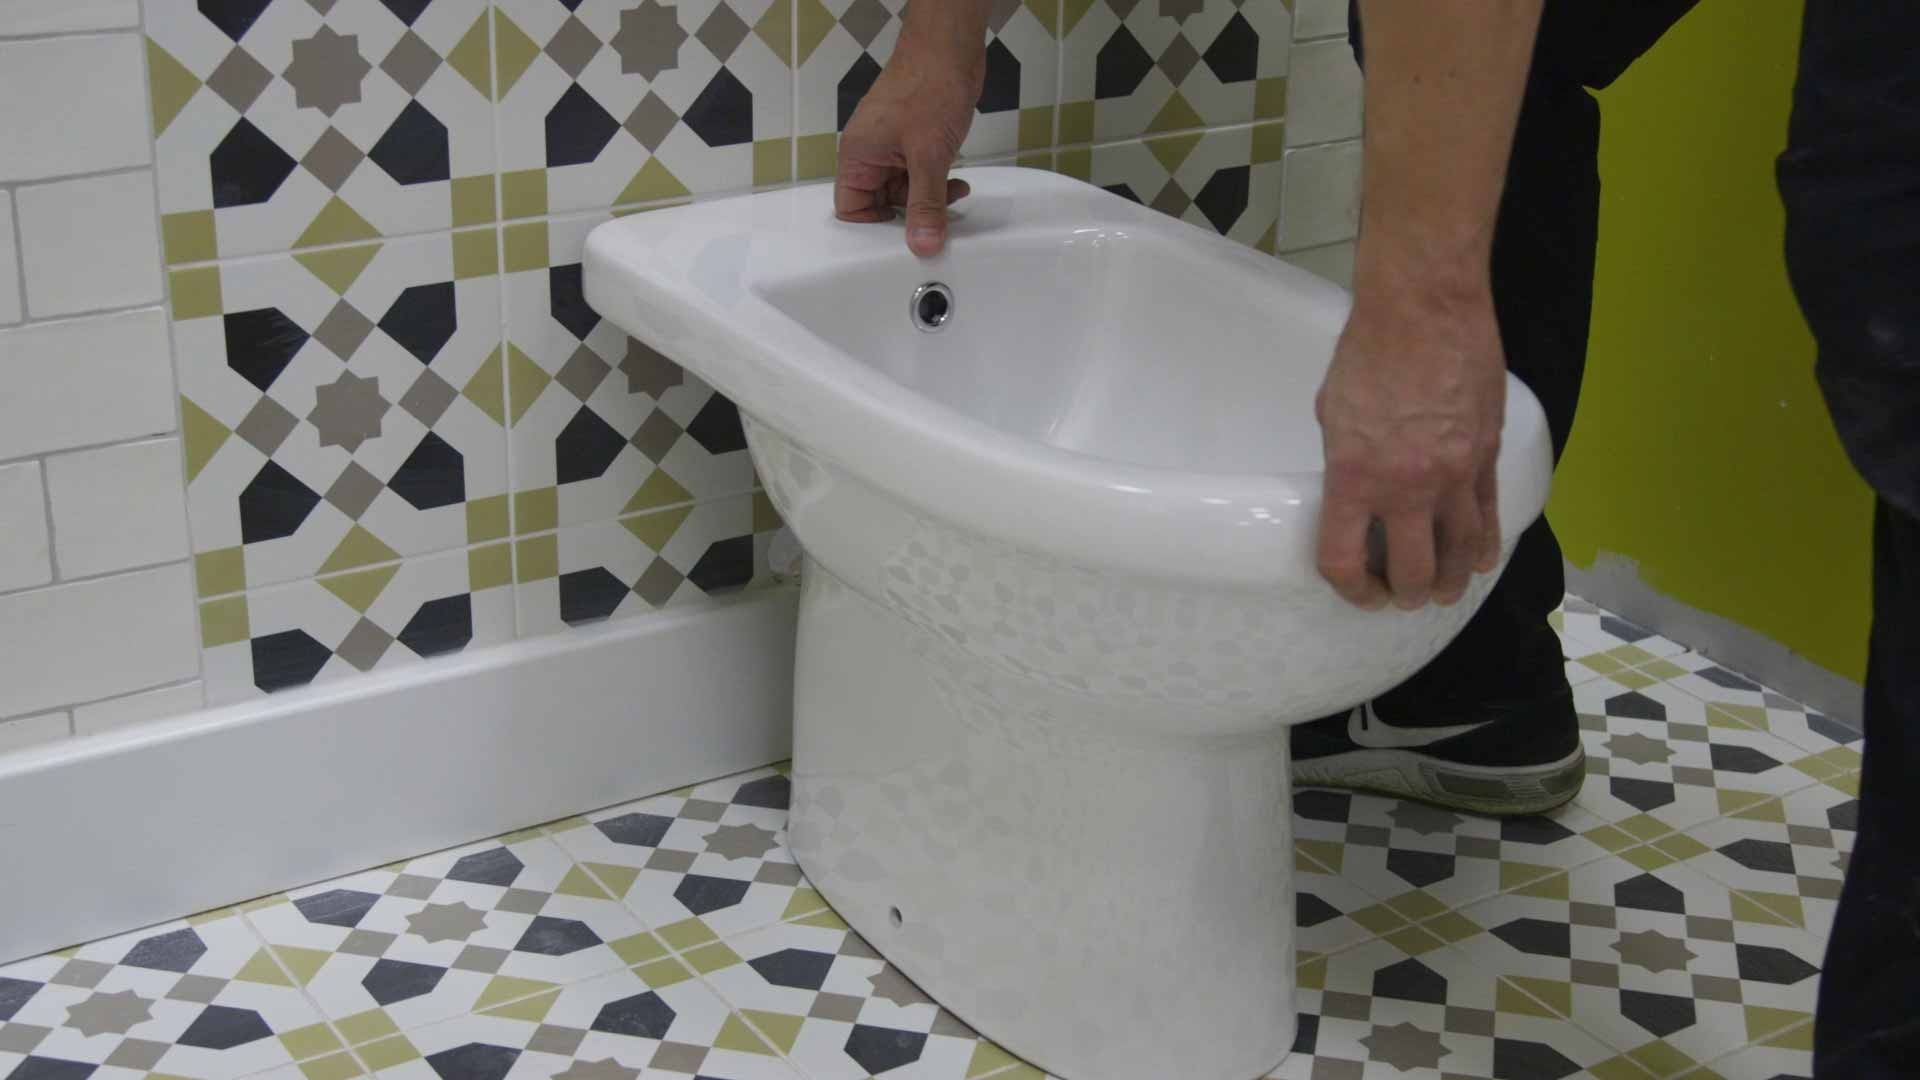 Placing the bidet in position